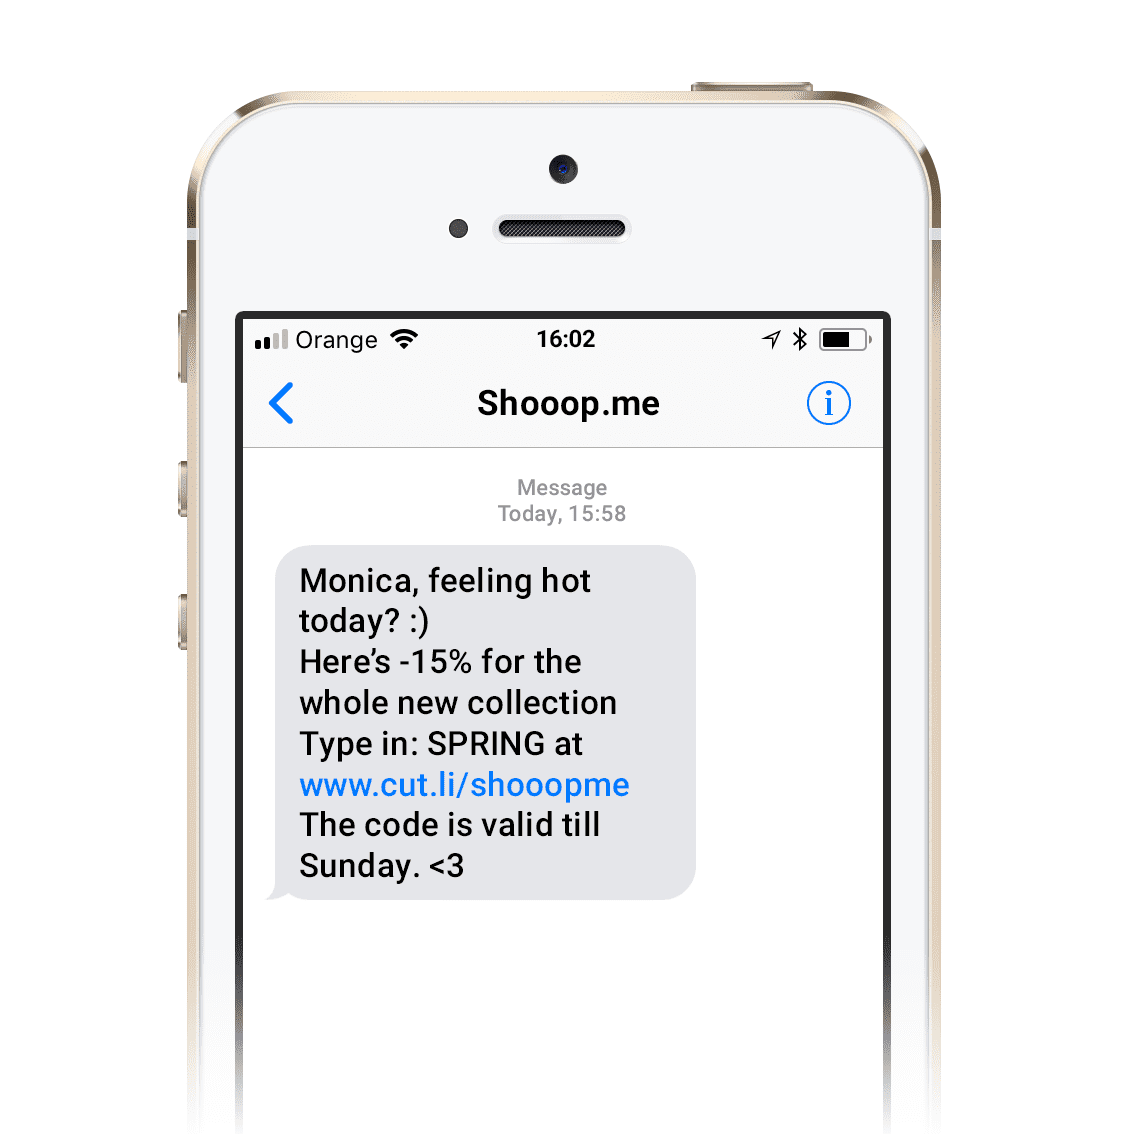 Example of an SMS with a sender name